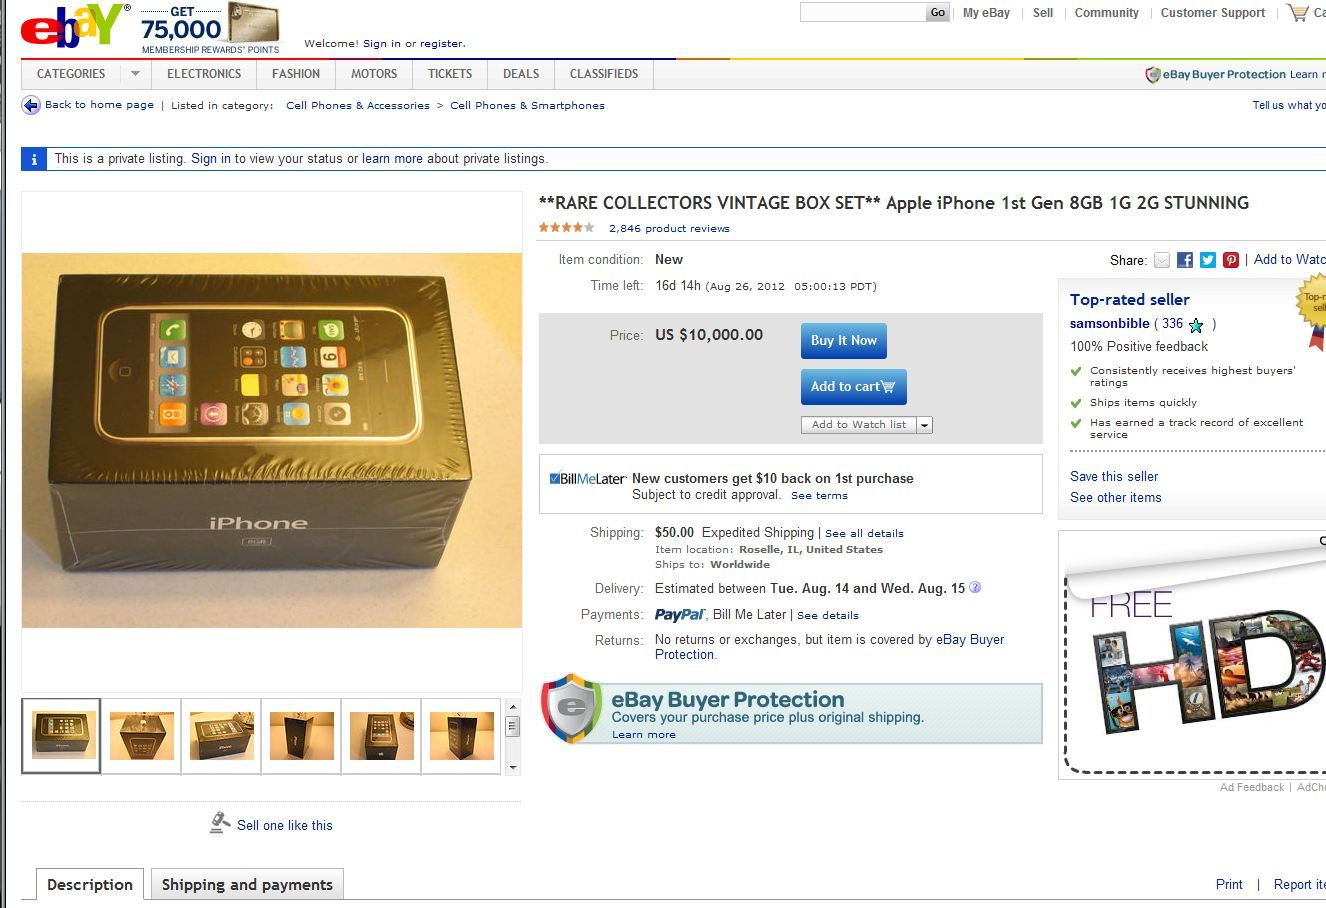 > WTF...Unopened first-gen iPhone appears on eBay for $10,000!! - Photo posted in BX Tech | Sign in and leave a comment below!